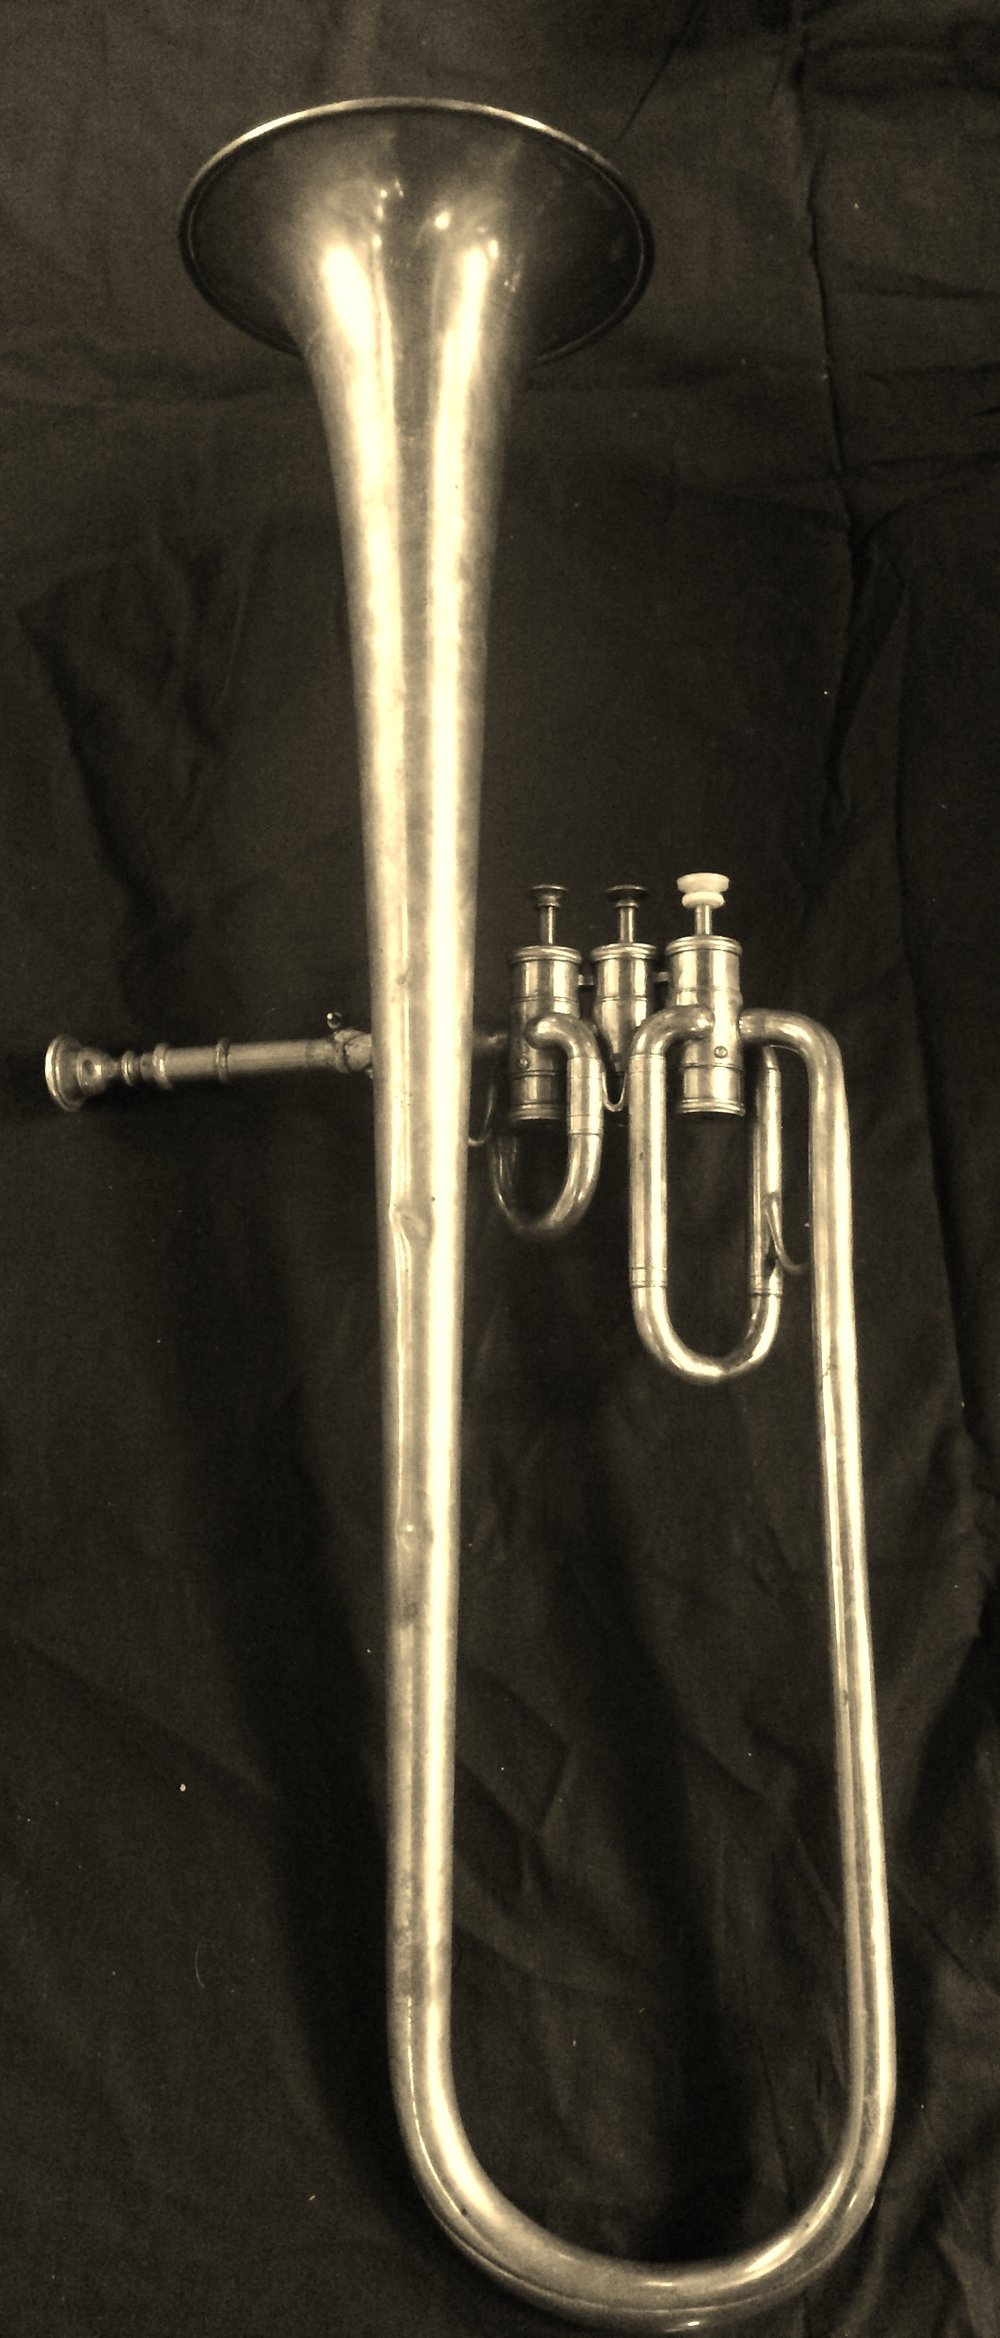 Adolphe Sax (Paris), sold by Distin & Sons (London) - contralto saxhorn in Bb